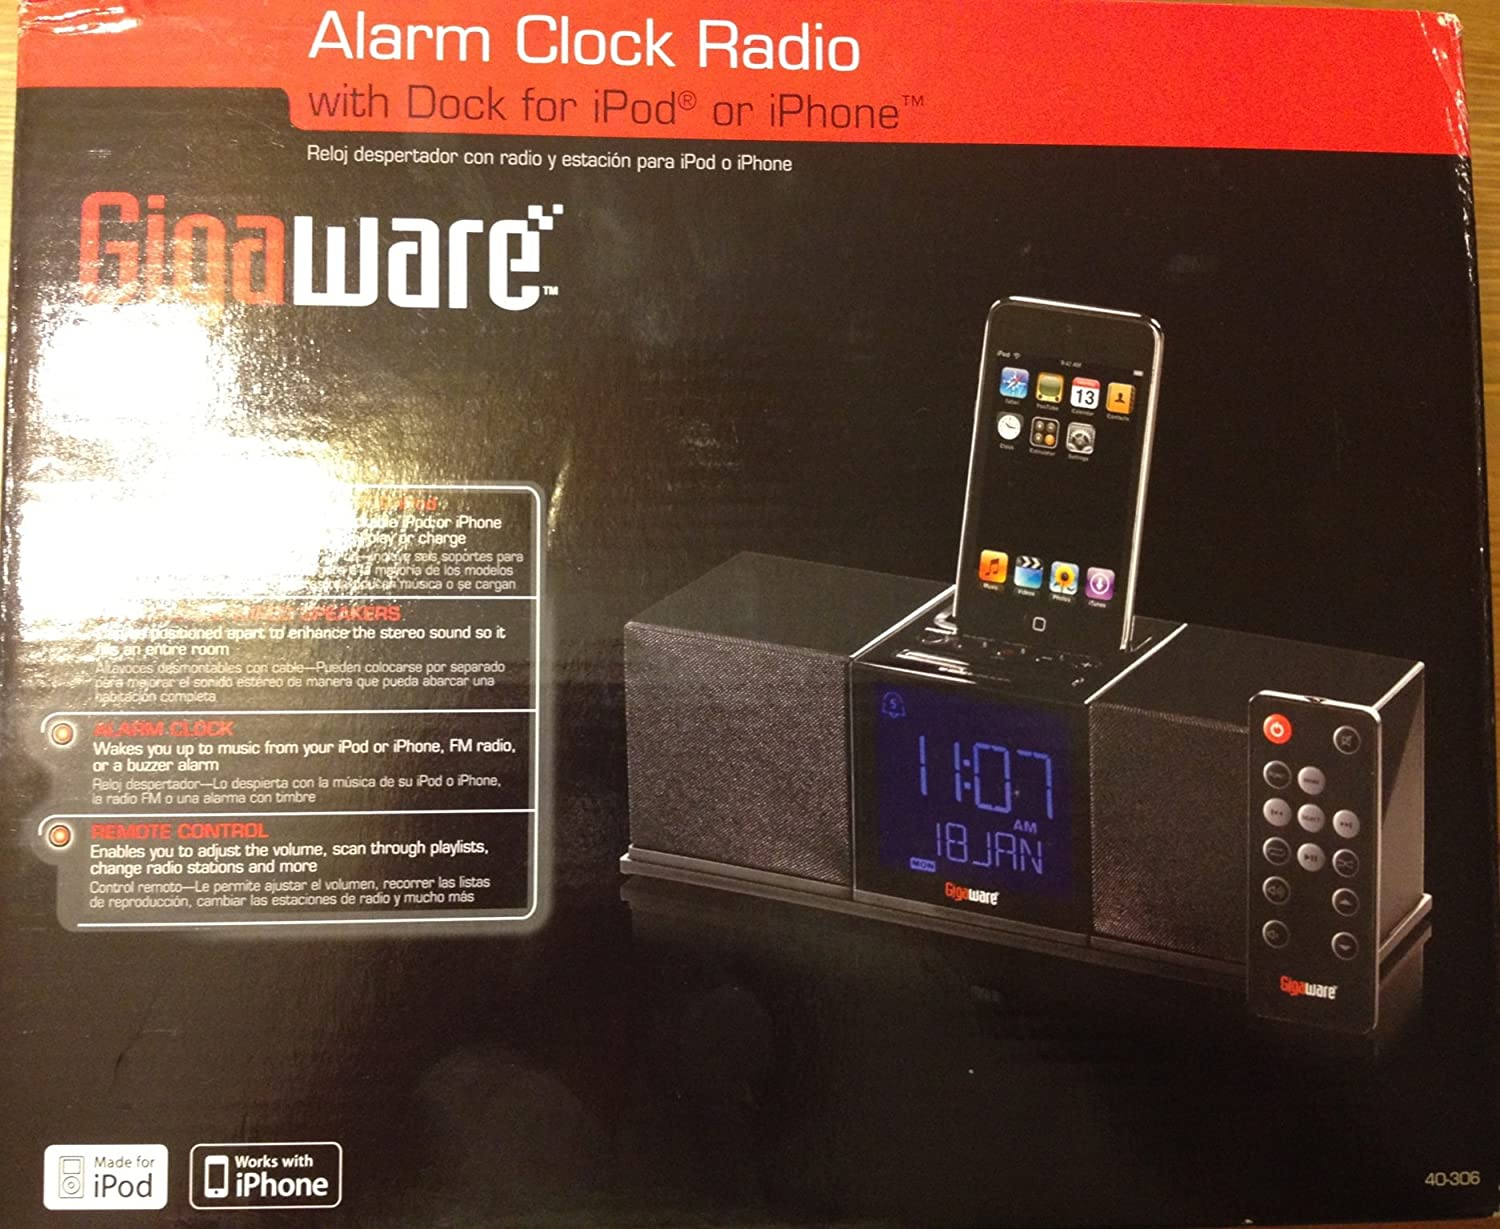 Amazon.com: Alarm Clock Radio with Dock for Ipod or Iphone: Home Audio & Theater